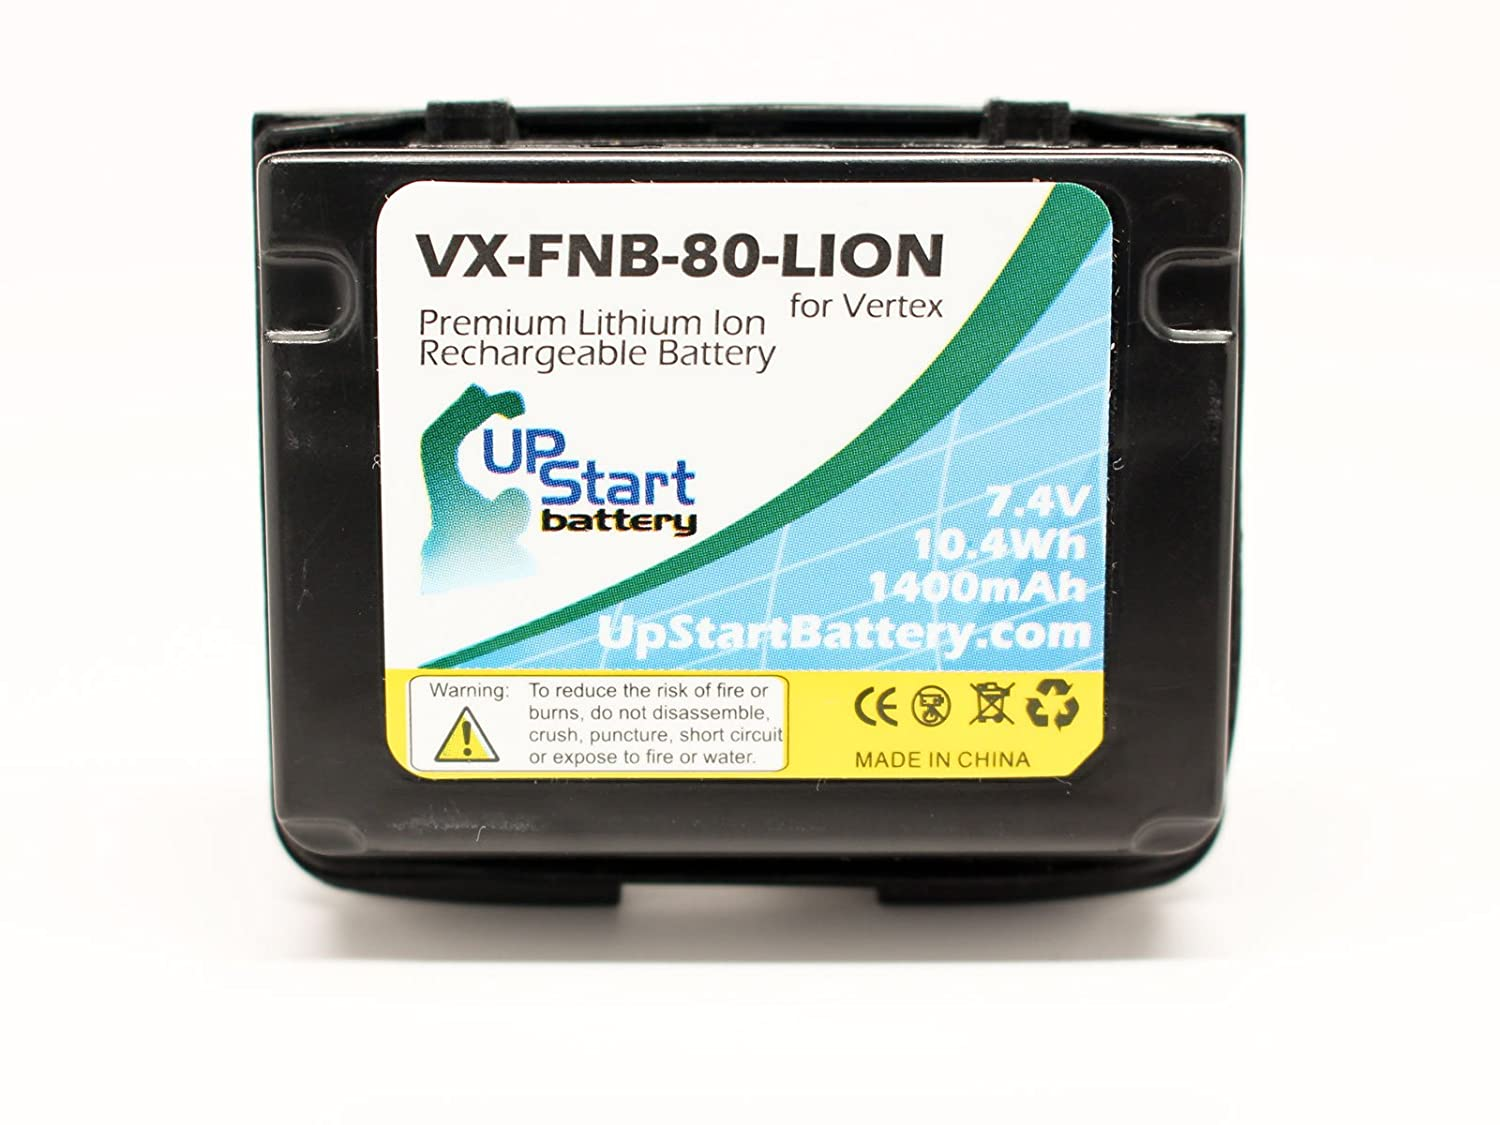 Replacement FNB-80Li, FNB-58Li Battery for Yaesu/Vertex VX-7R, VX-6, VX-6R, VX-5, VX-5R, VXA-710, VXA-700, VX-7RB and Standard Horizon HX471S, HX460S, HX470 Two-Way Radios - Upstart Battery